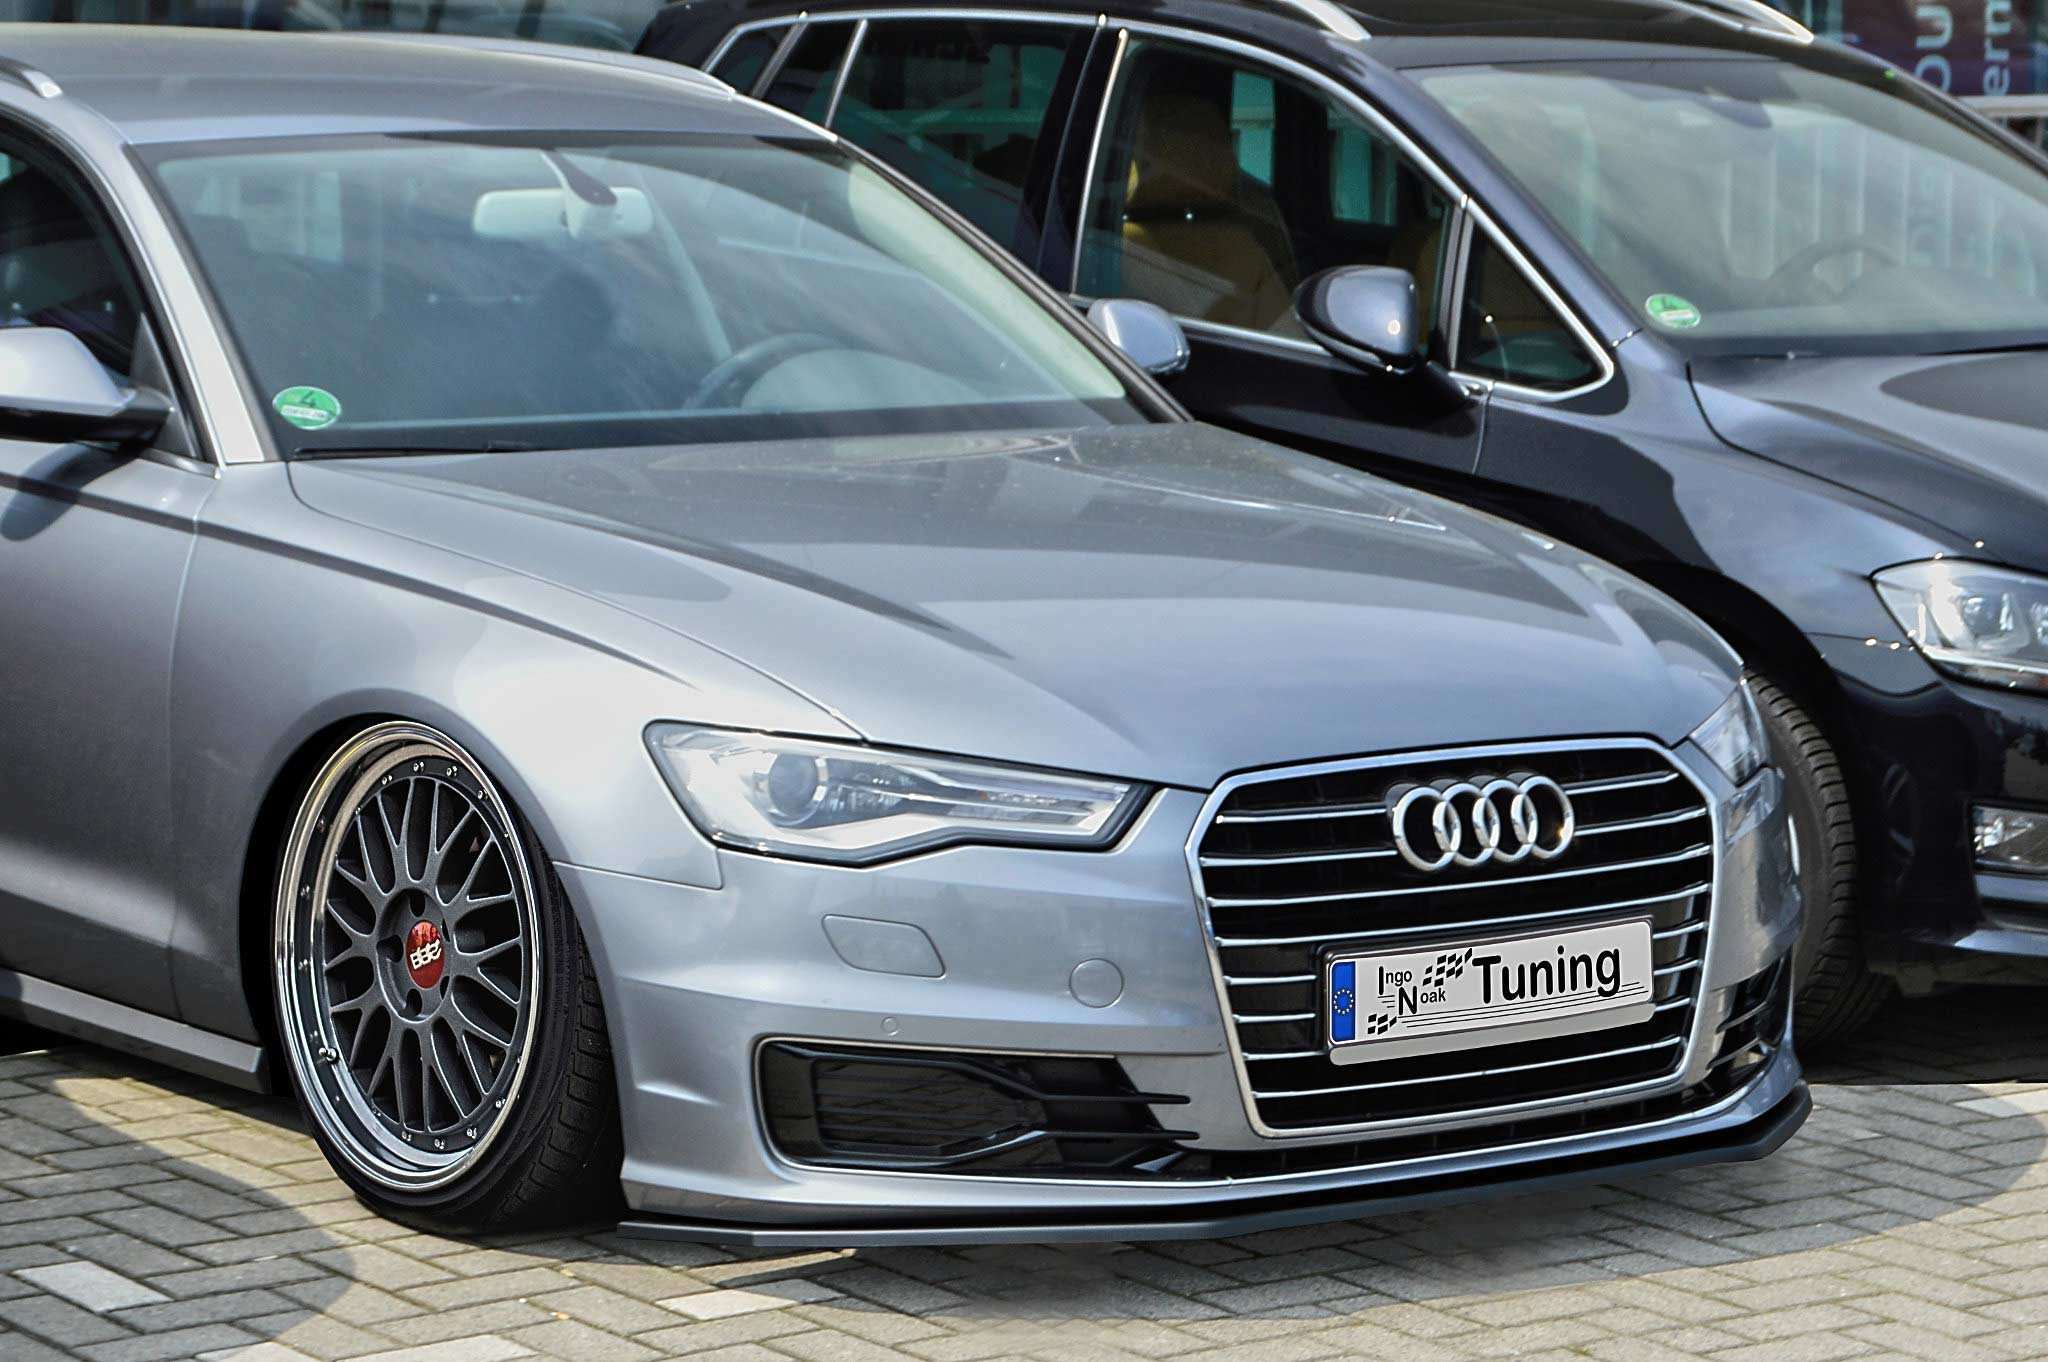 In Tuning Cupspoilerlip Glossy For Audi A6 C7 Typ 4g Facelift